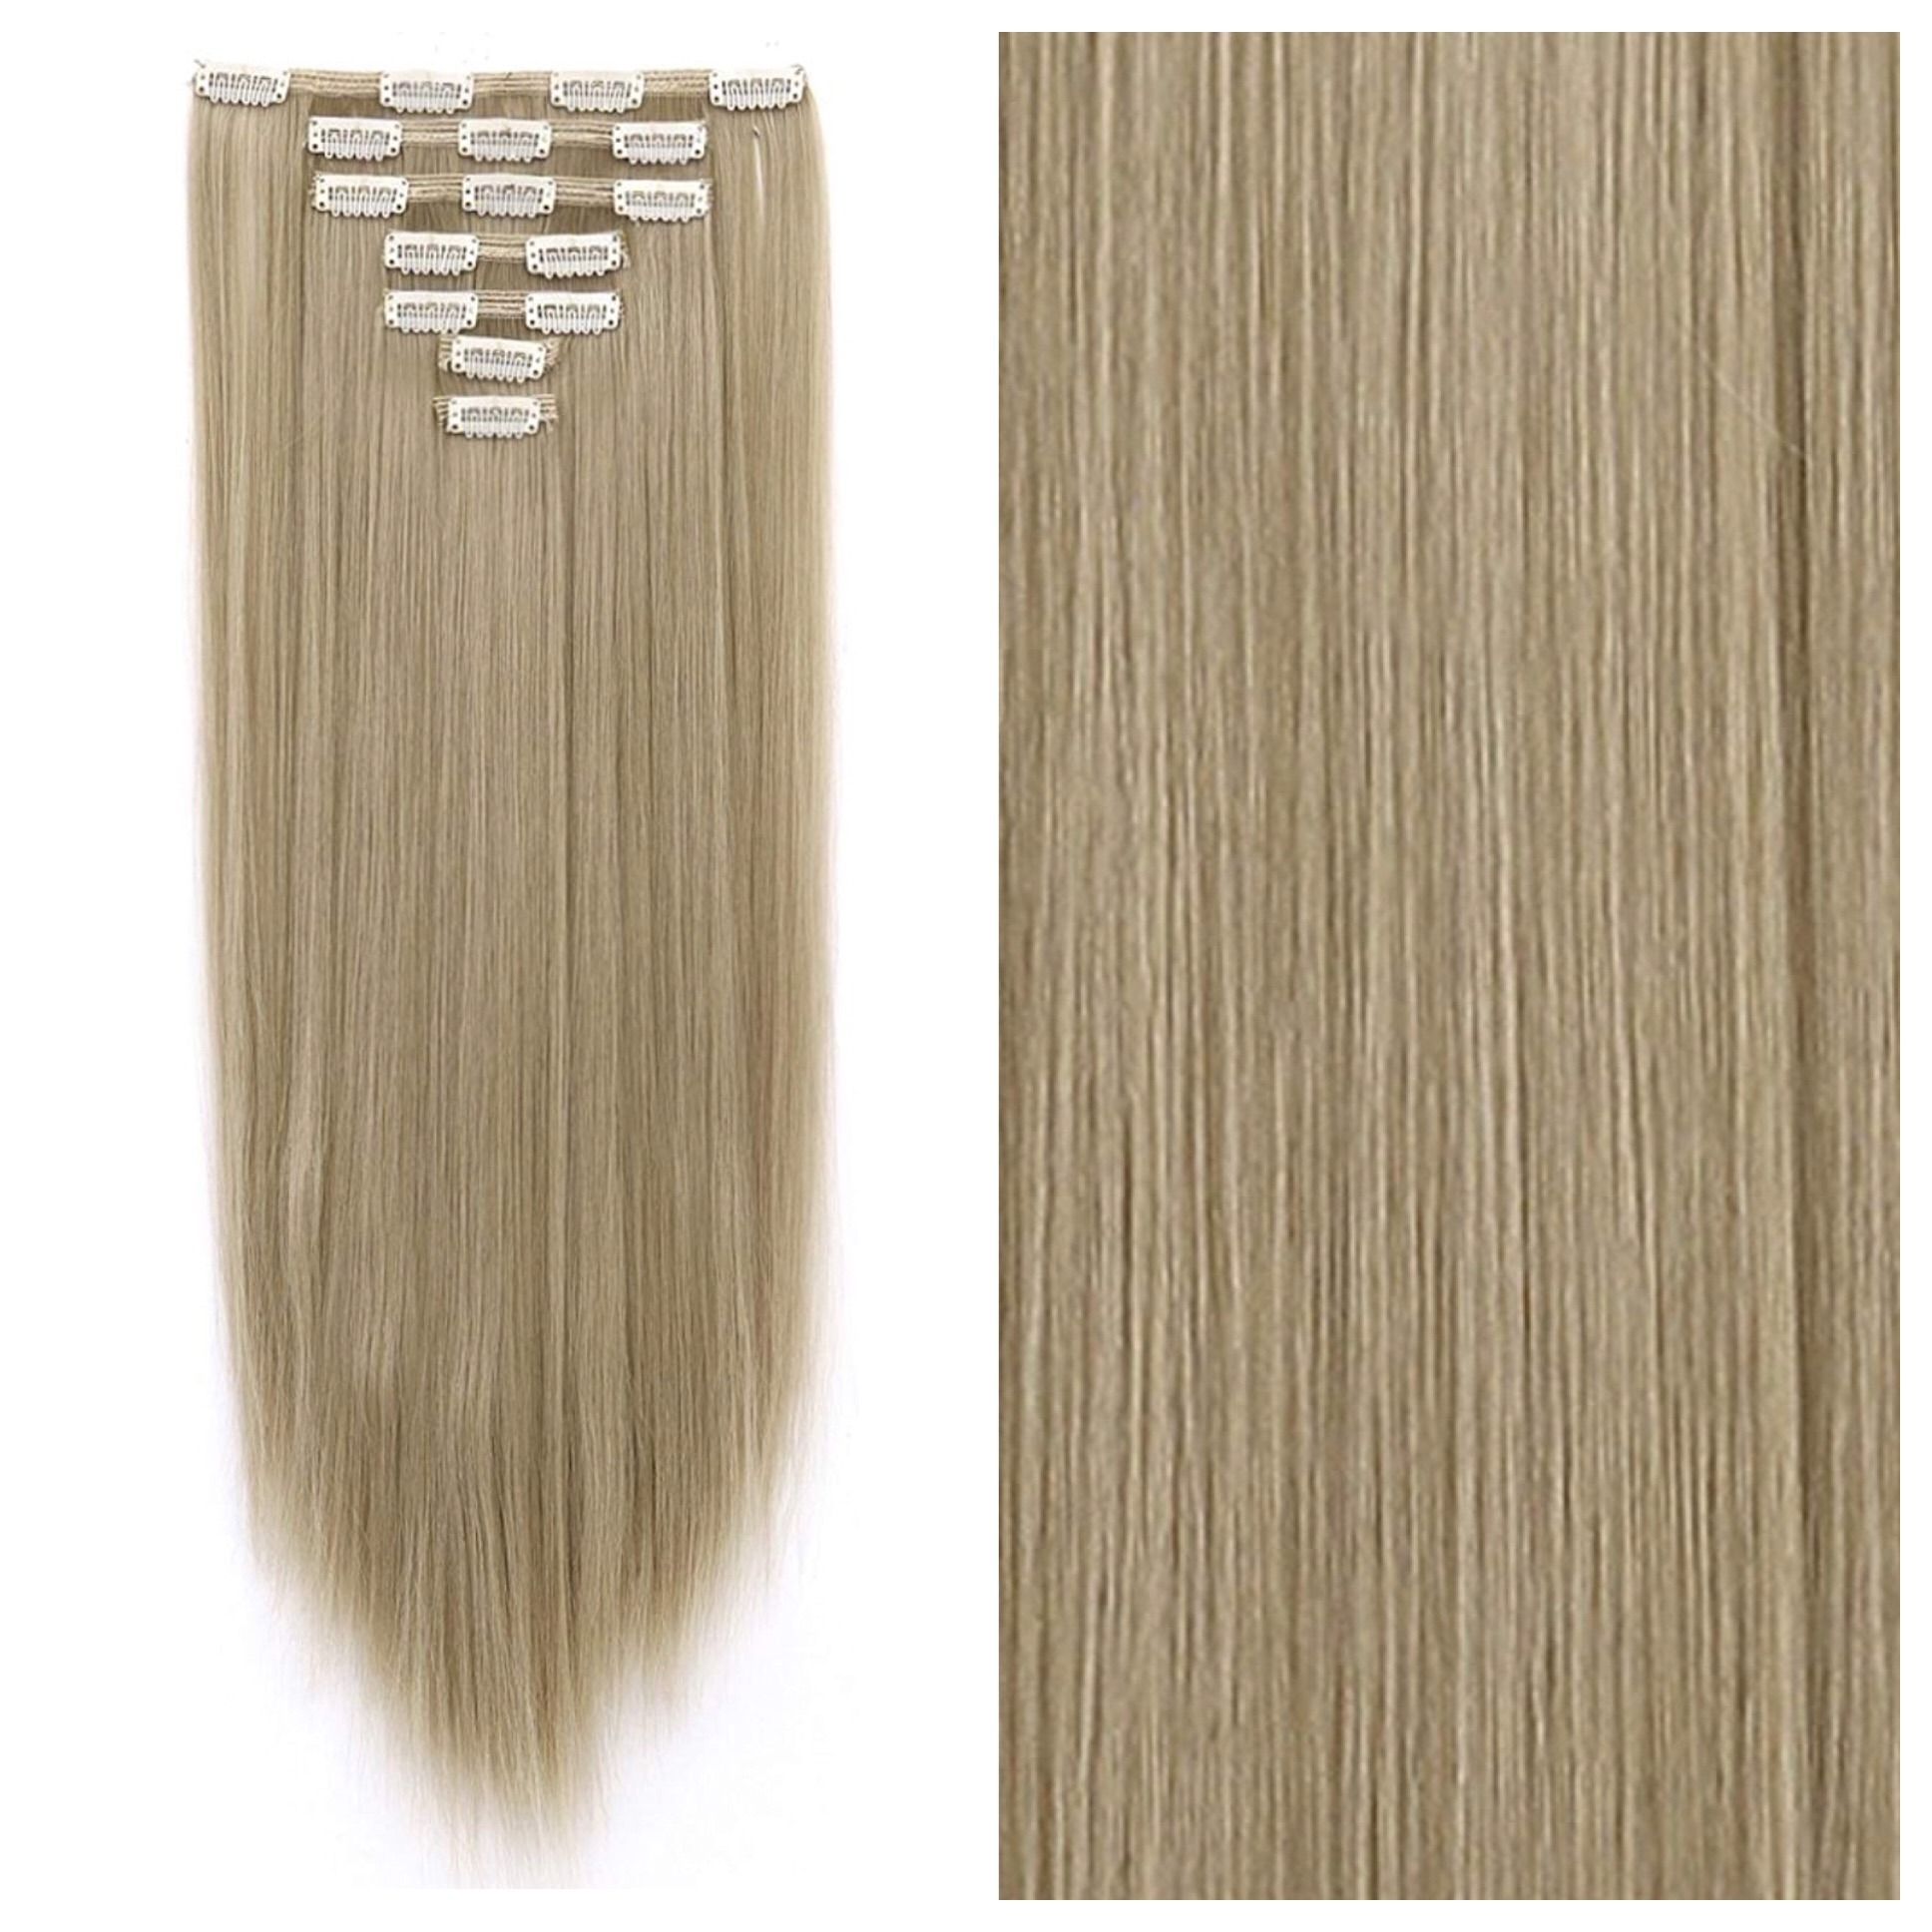 Dirty Blonde Clip In Hair Extensions 26 Double Weft 200g Remy Human